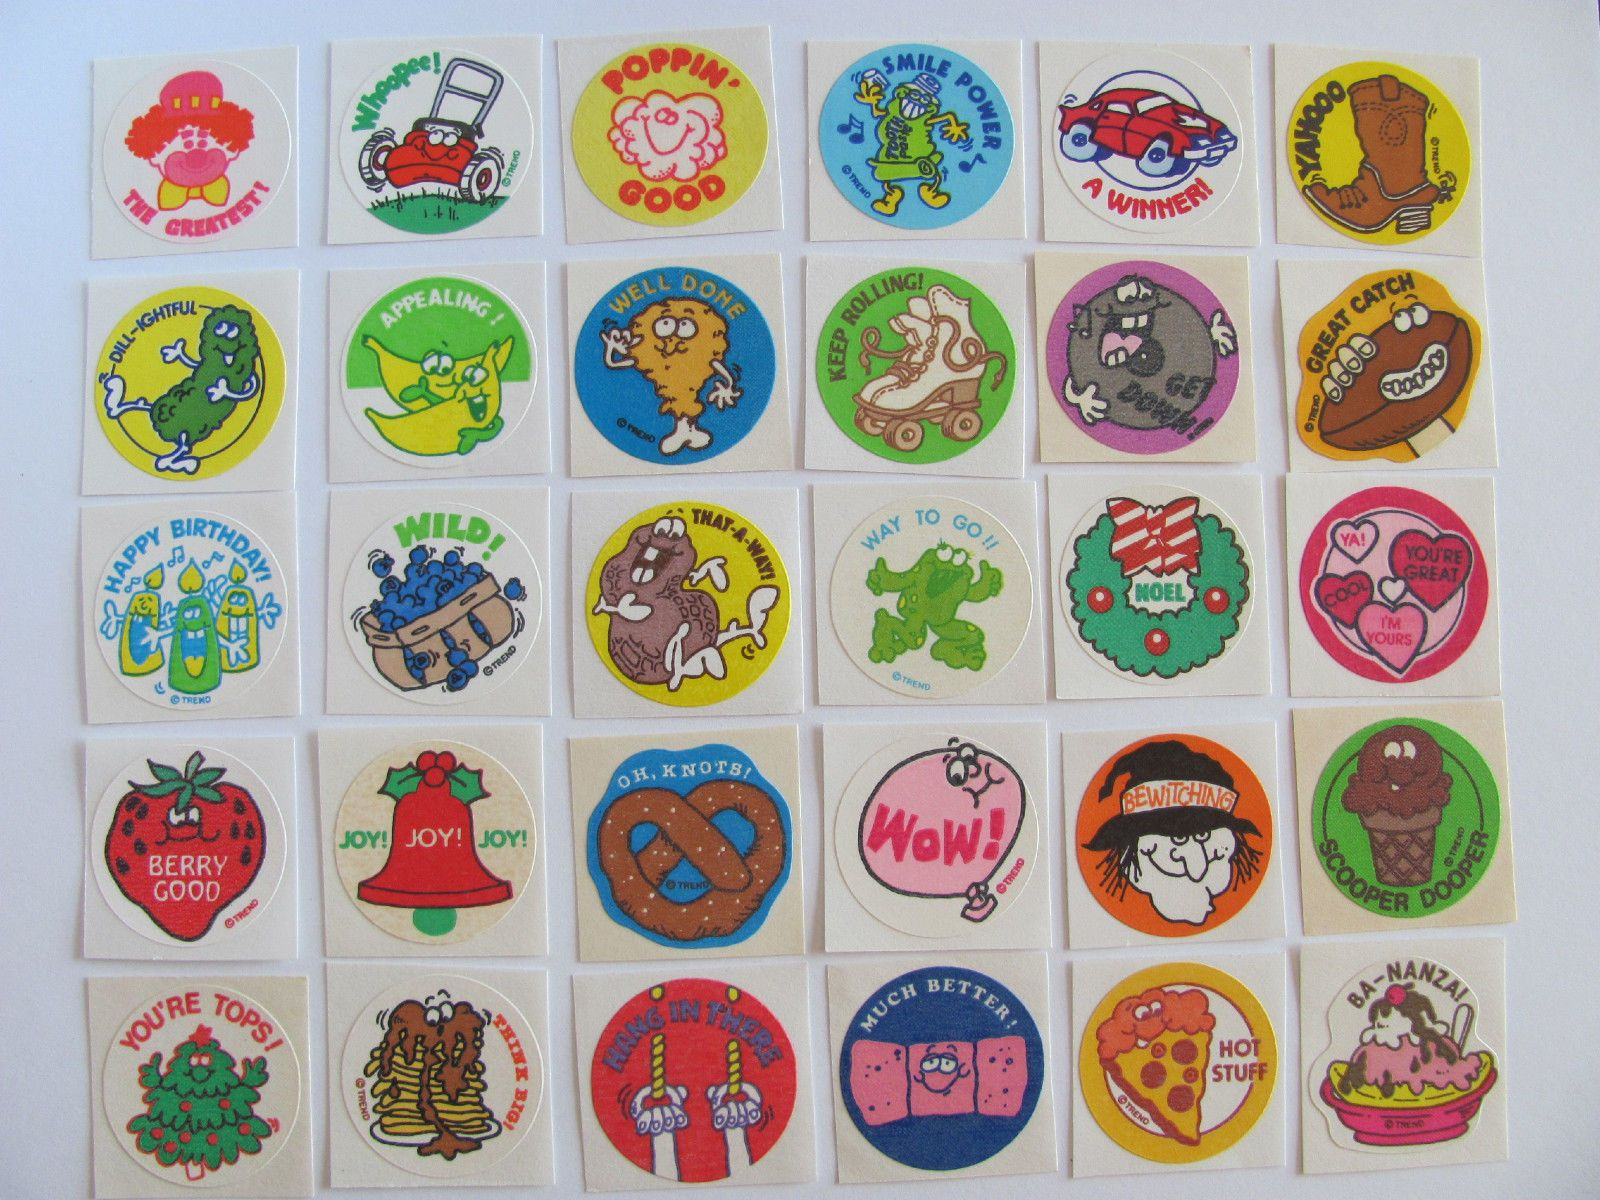 A sheet of scratch 'n' sniff stickers